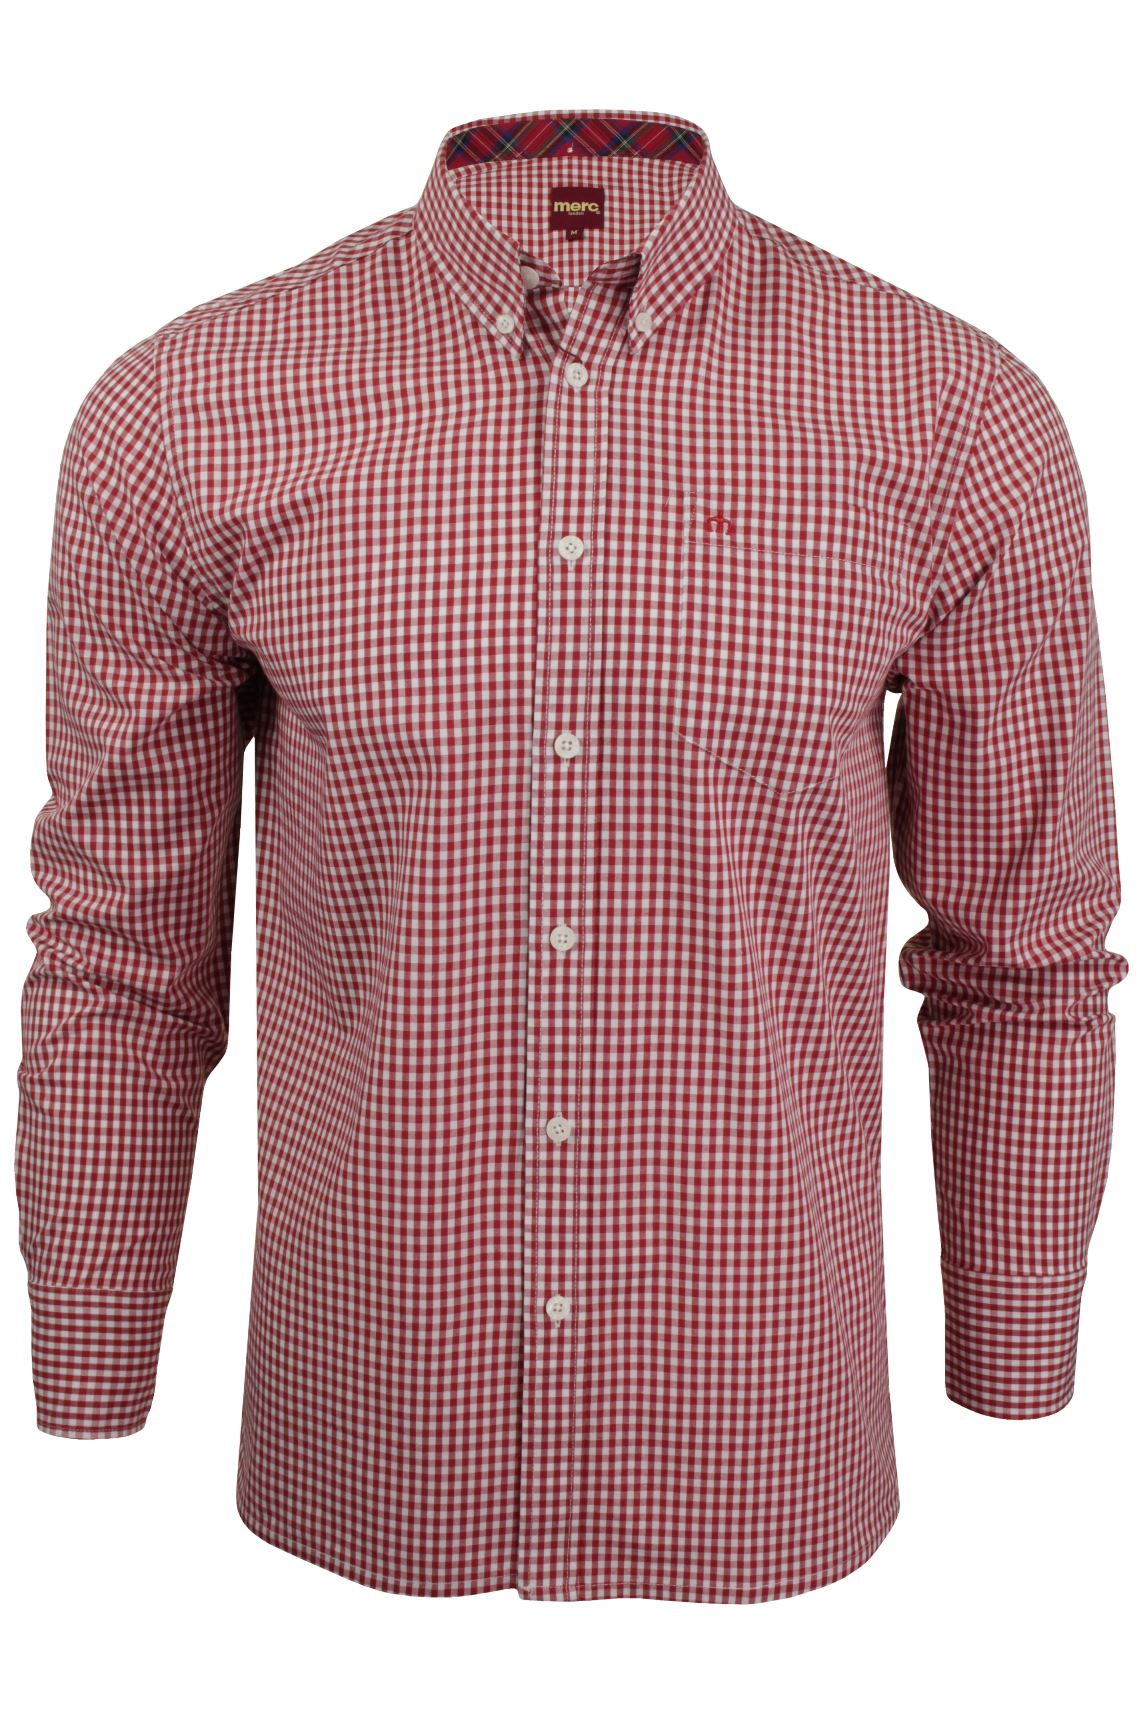 Mens Long Sleeved Gingham Shirt by Merc London 'Japster'_01_1506215Japster_Blood